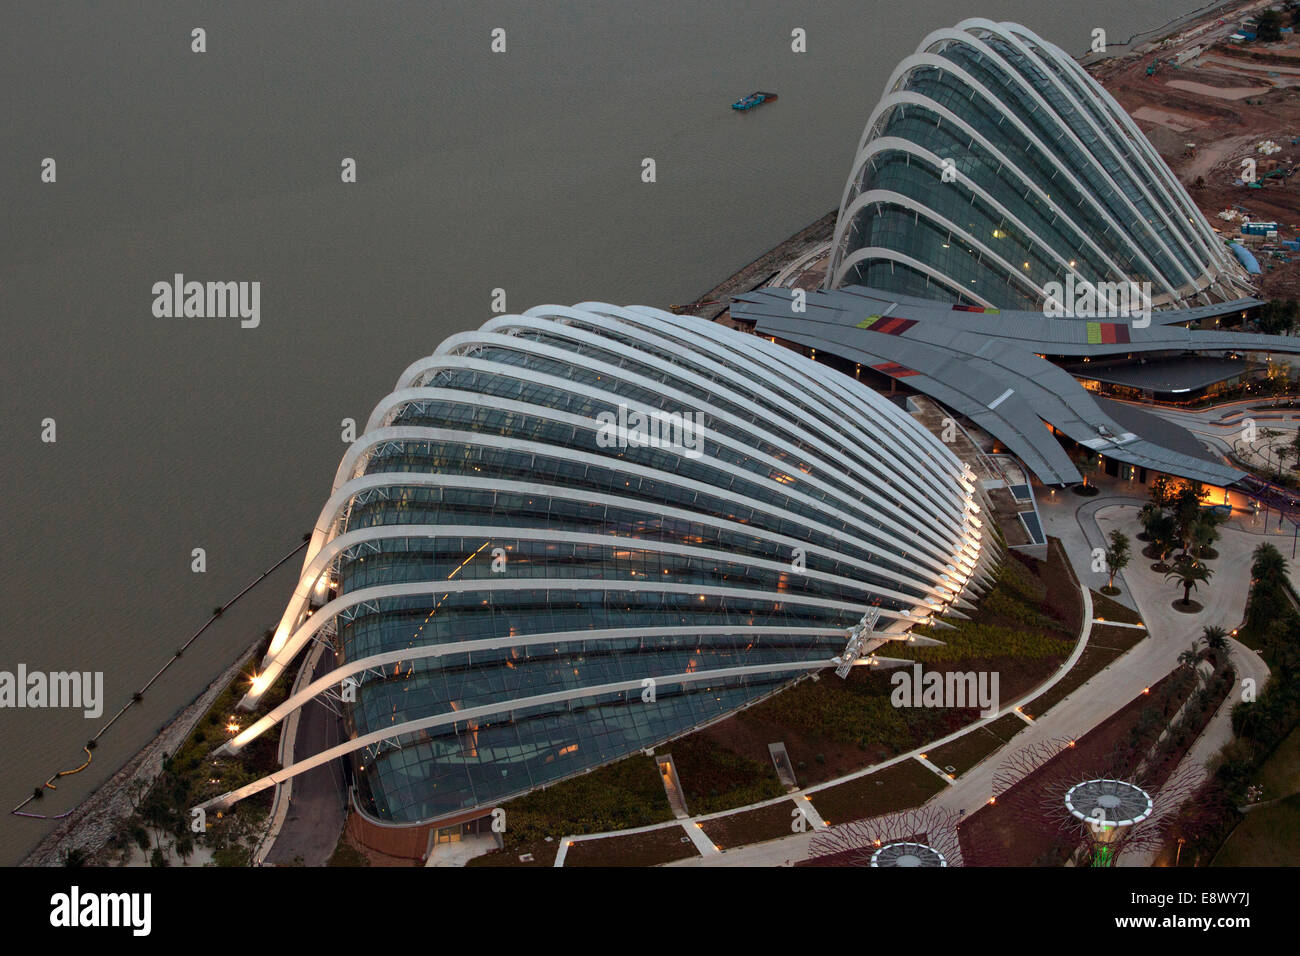 Evening view of cooled conservatories at Gardens by the Bay, Singapore - Stock Image